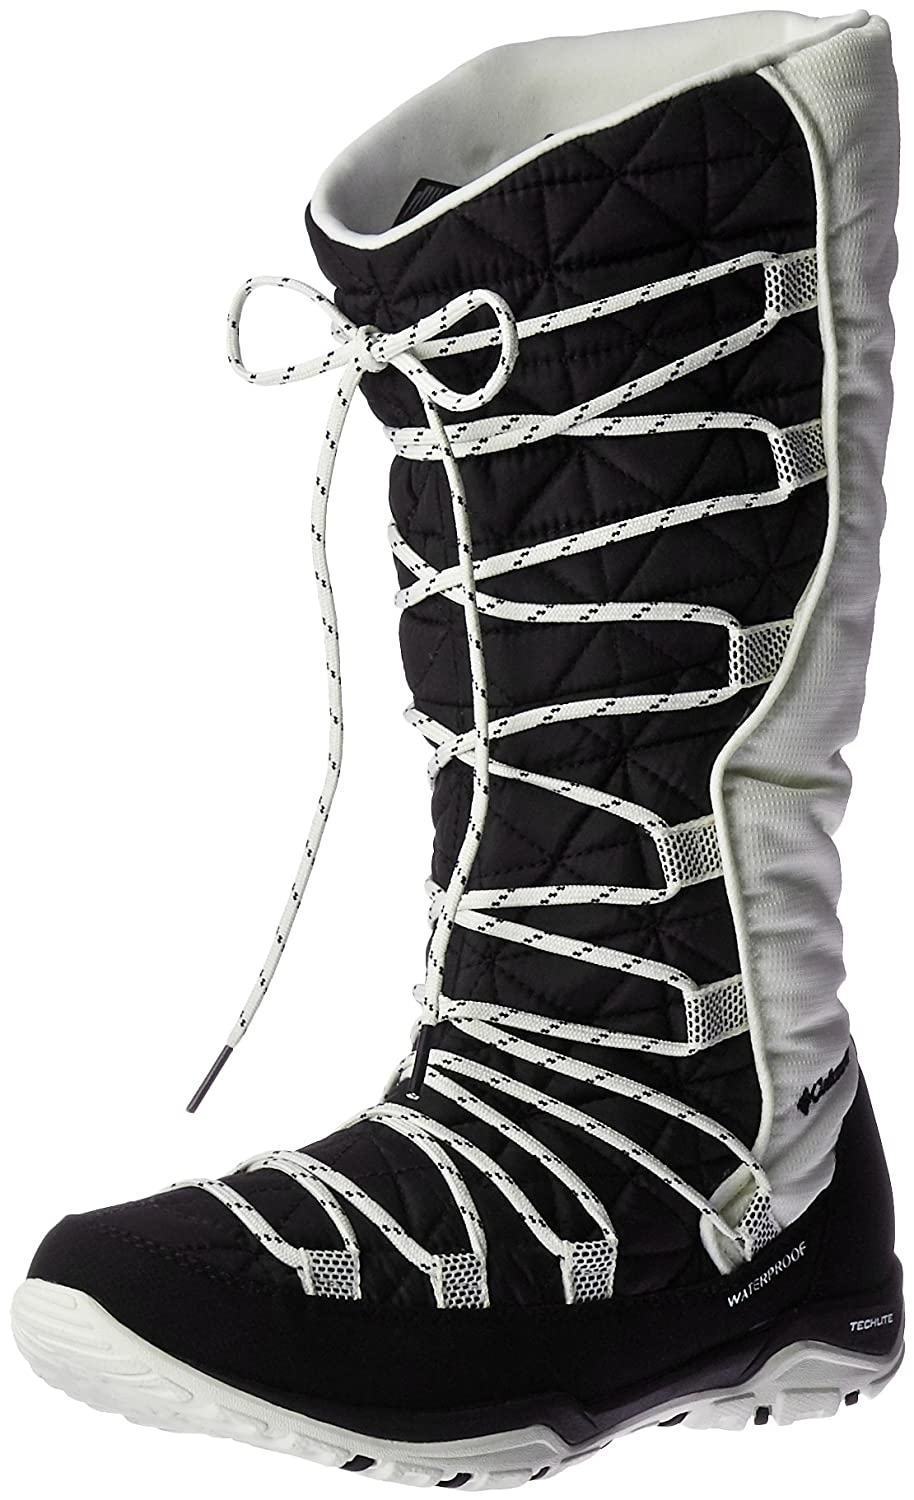 Columbia Women's Loveland Omni-Heat Snow Boot B0183O26L0 8.5 B(M) US|Black/Sea Salt